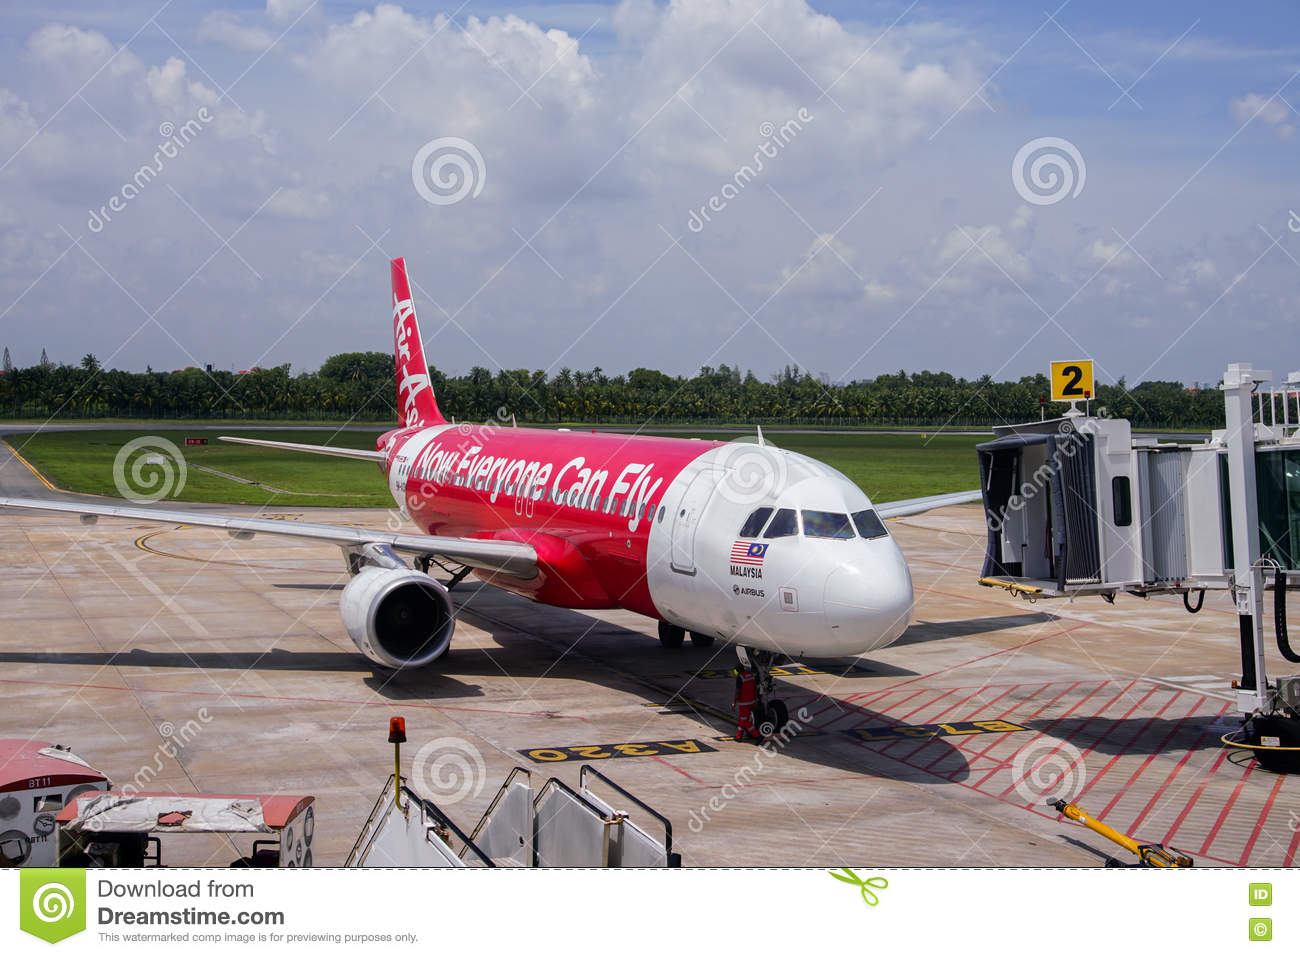 air asia company essay How did airasia become one of the leading asia's airlines what distinctive resources and competencies did the company build and attempt to sustain for this position.